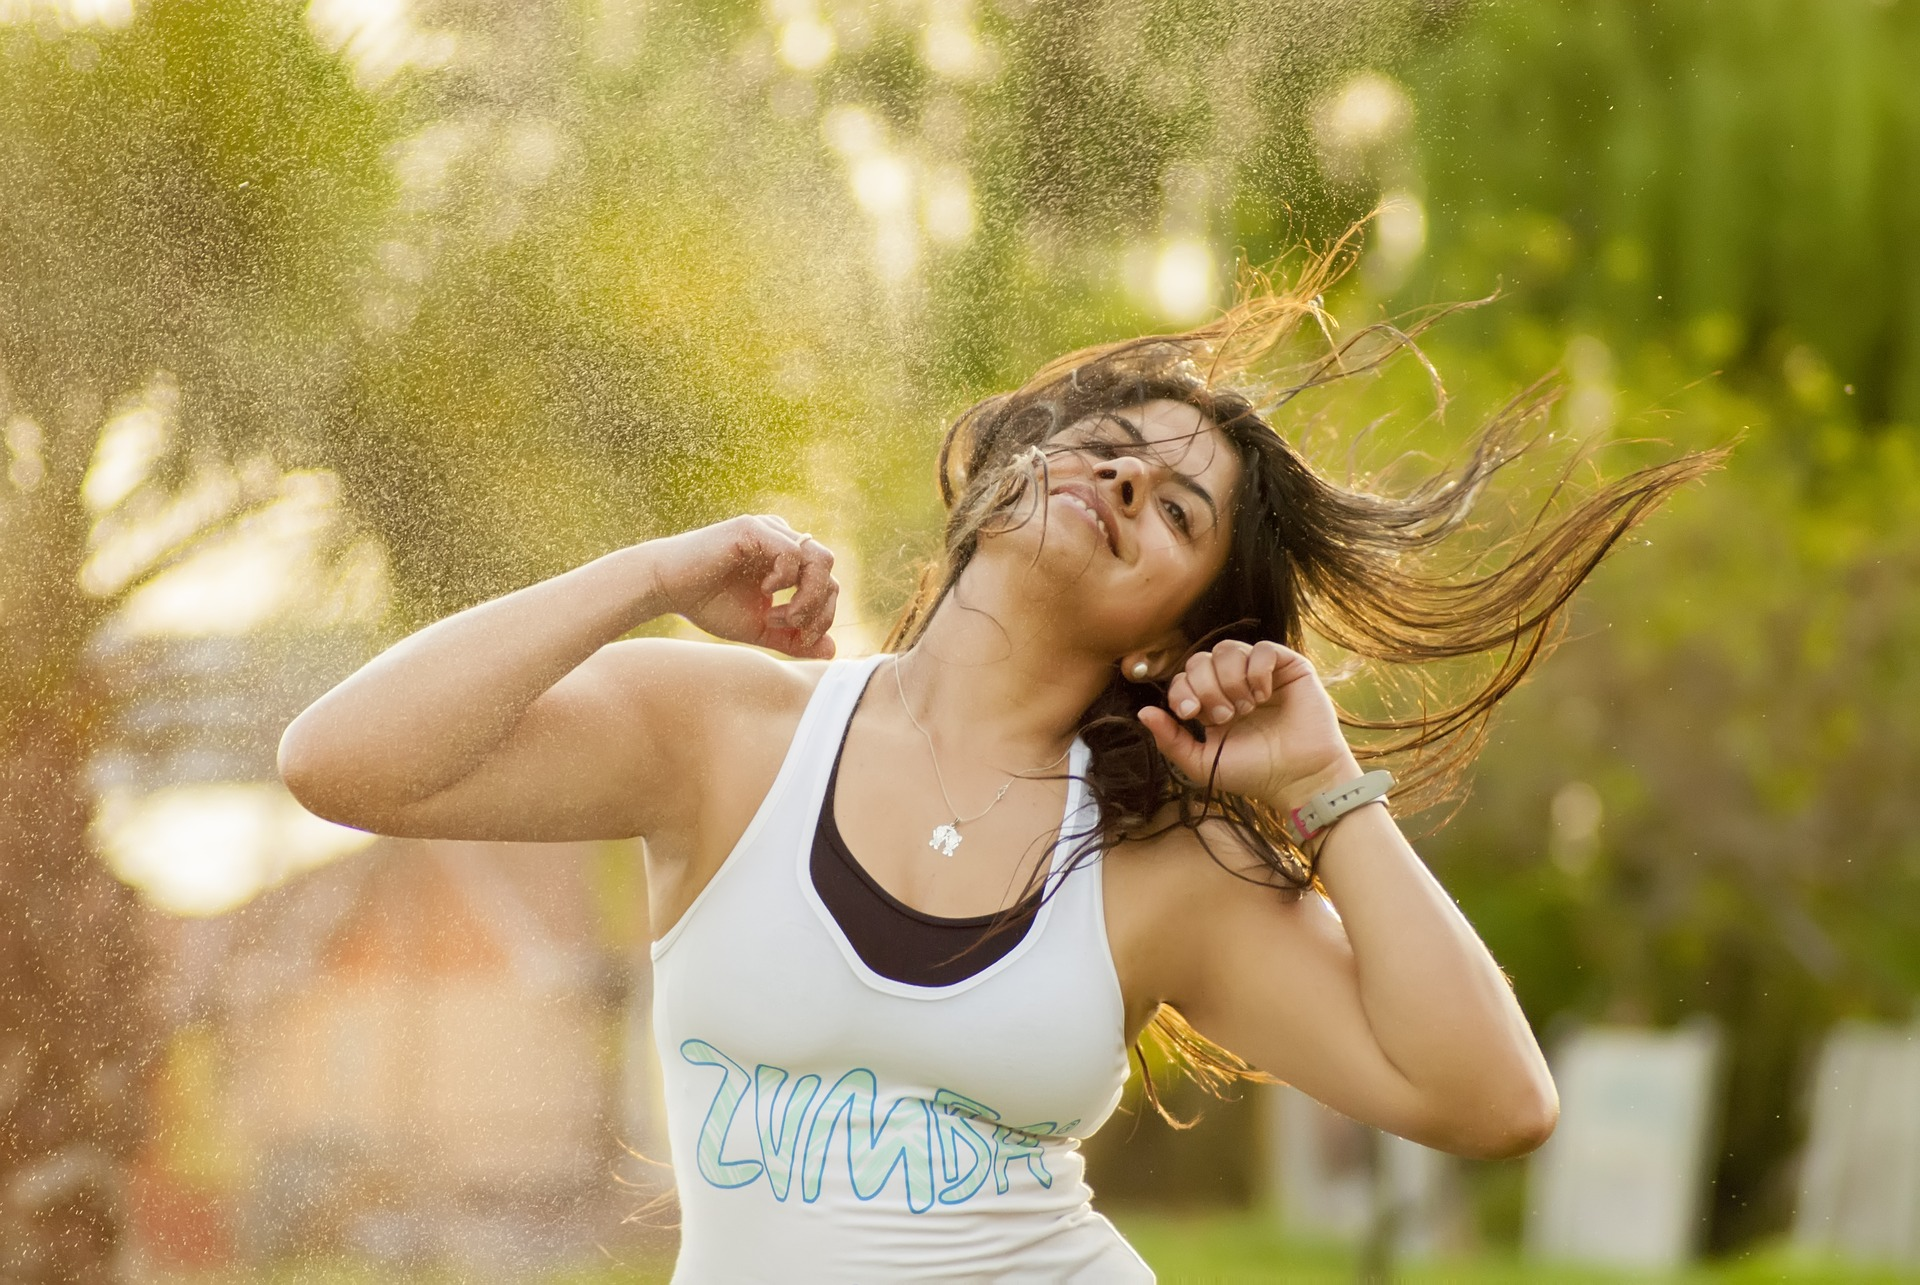 physical activity and positivity